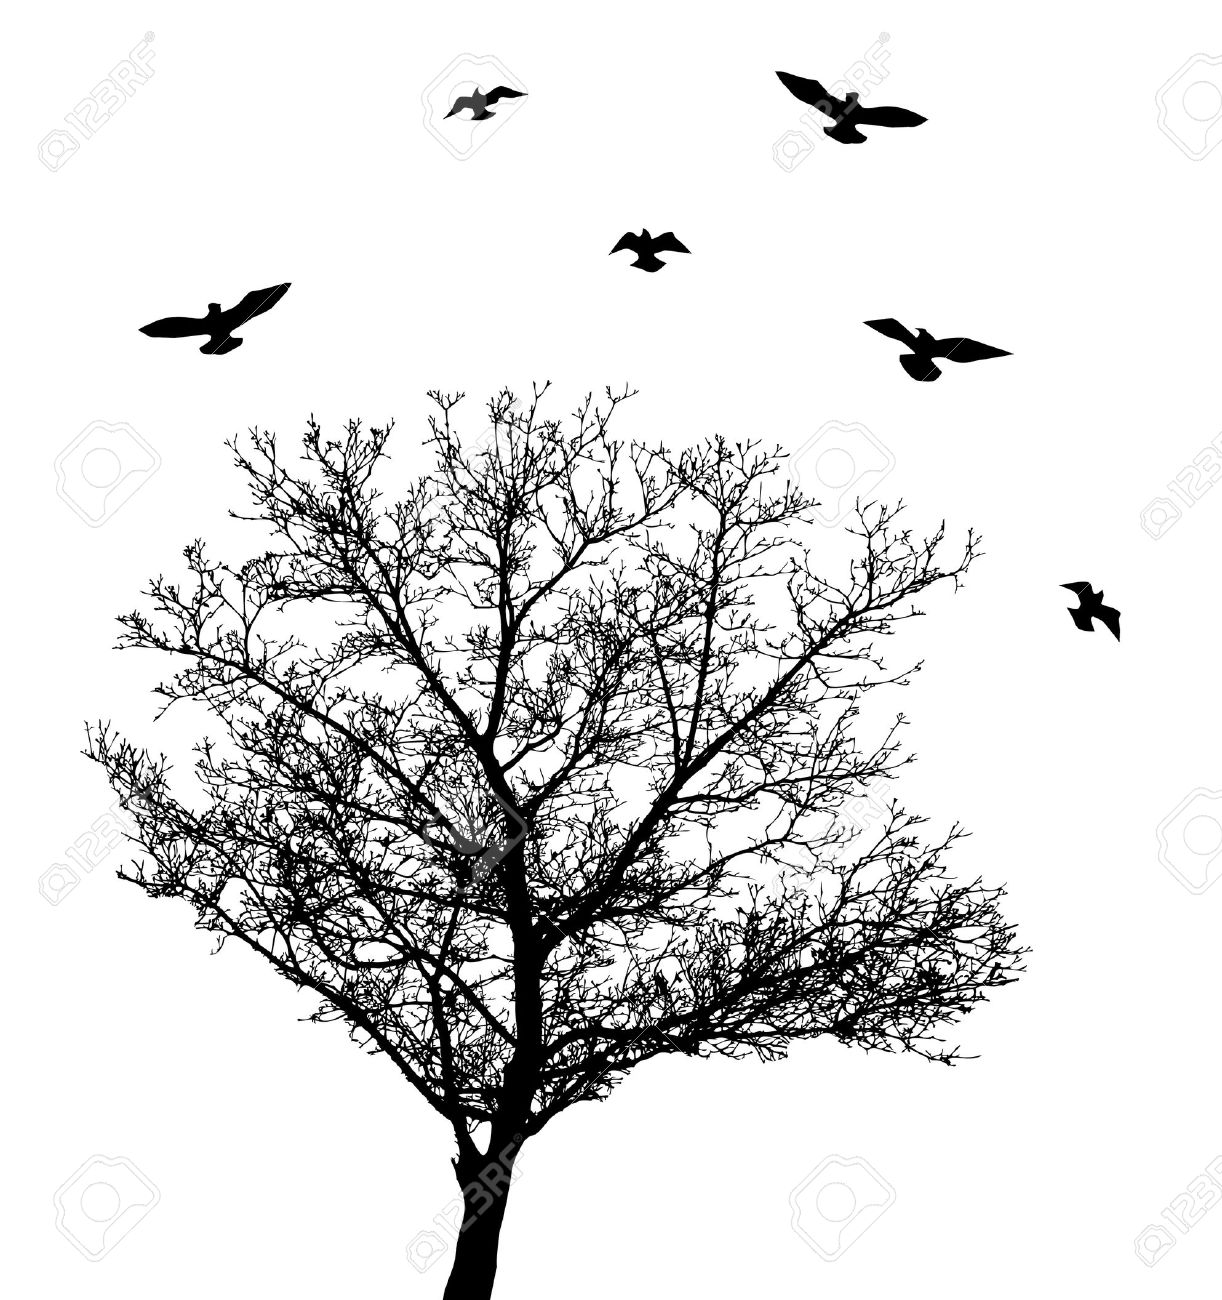 Lonely Tree clipart #18, Download drawings